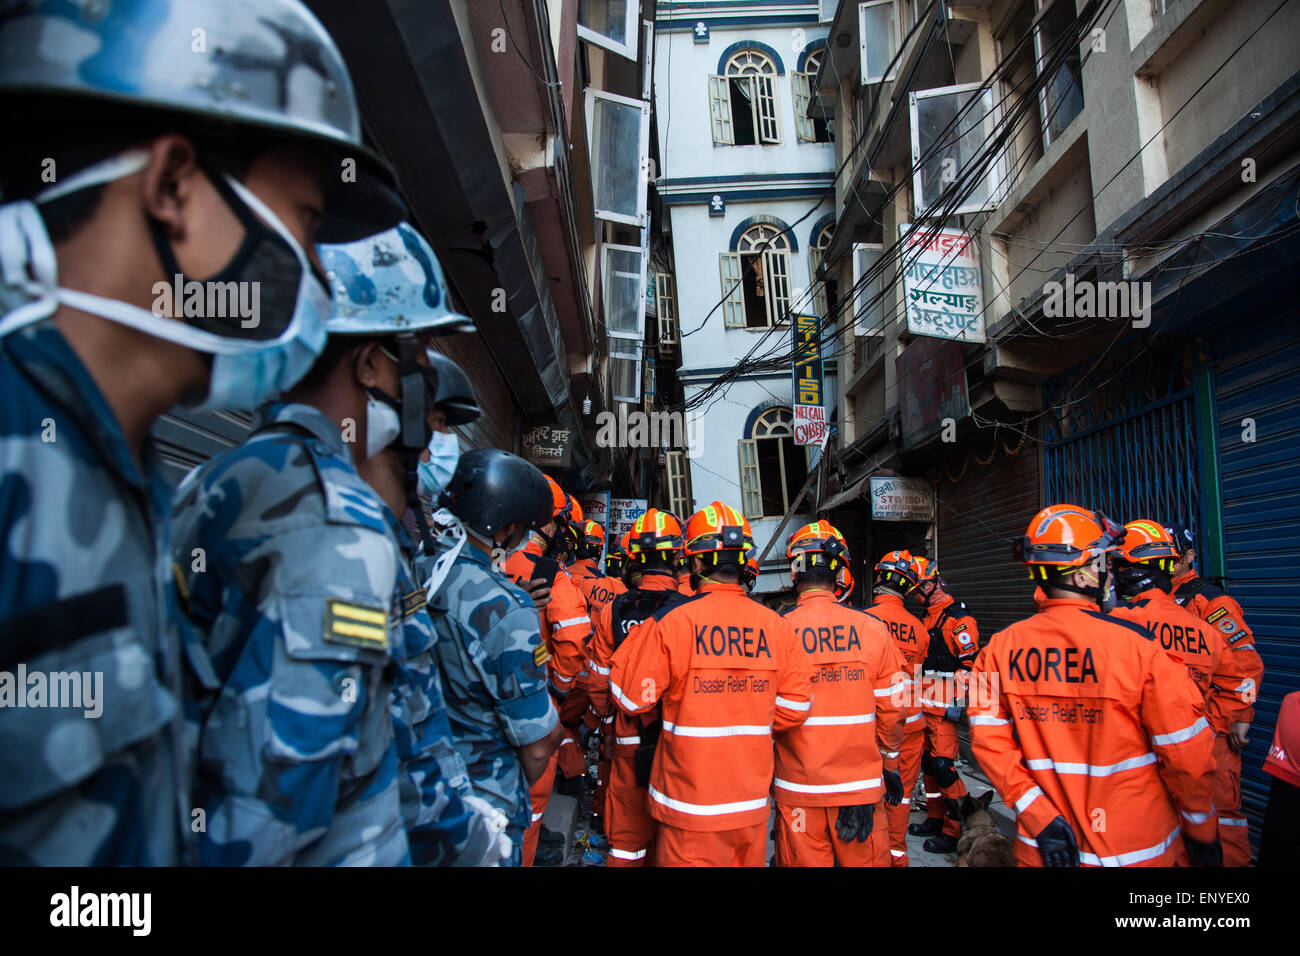 Korean disaster team performing an operation in goganbu Nepal. - Stock Image